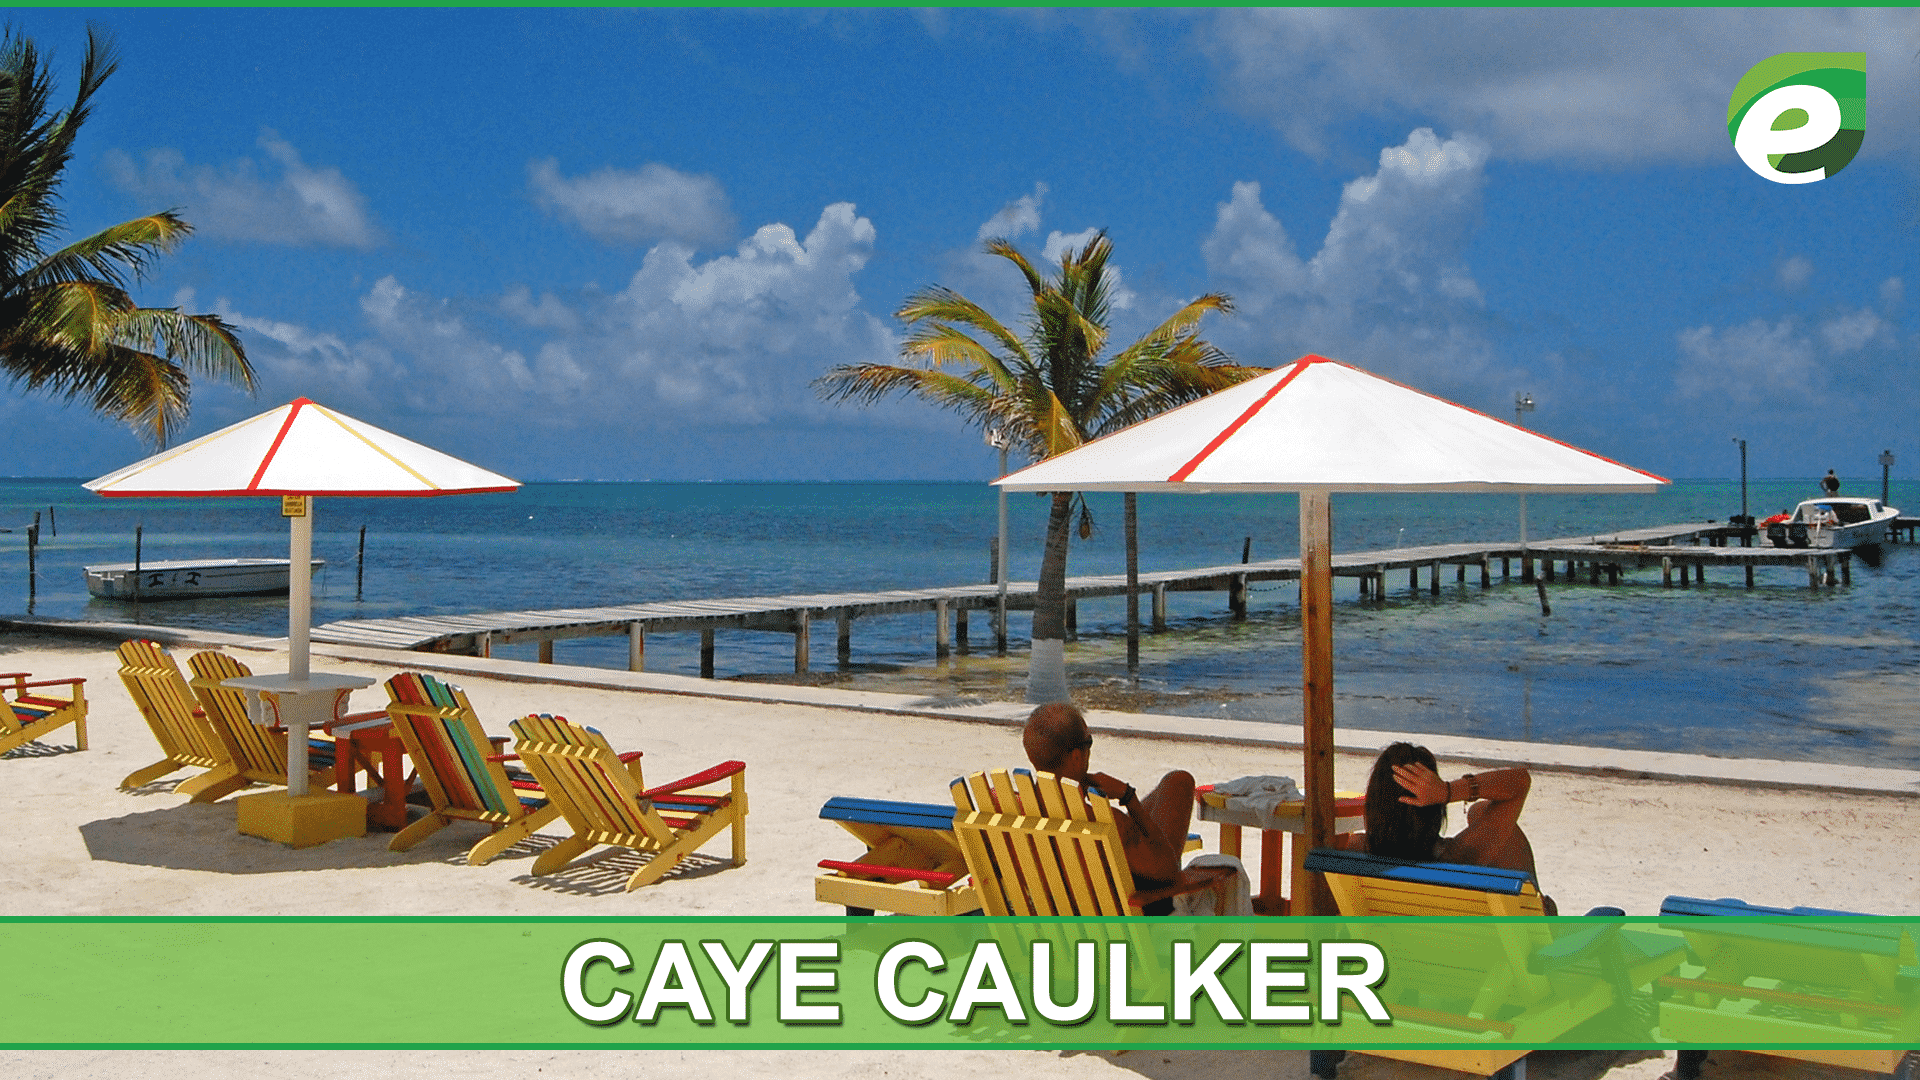 Beaches in Belize- Caye caulker